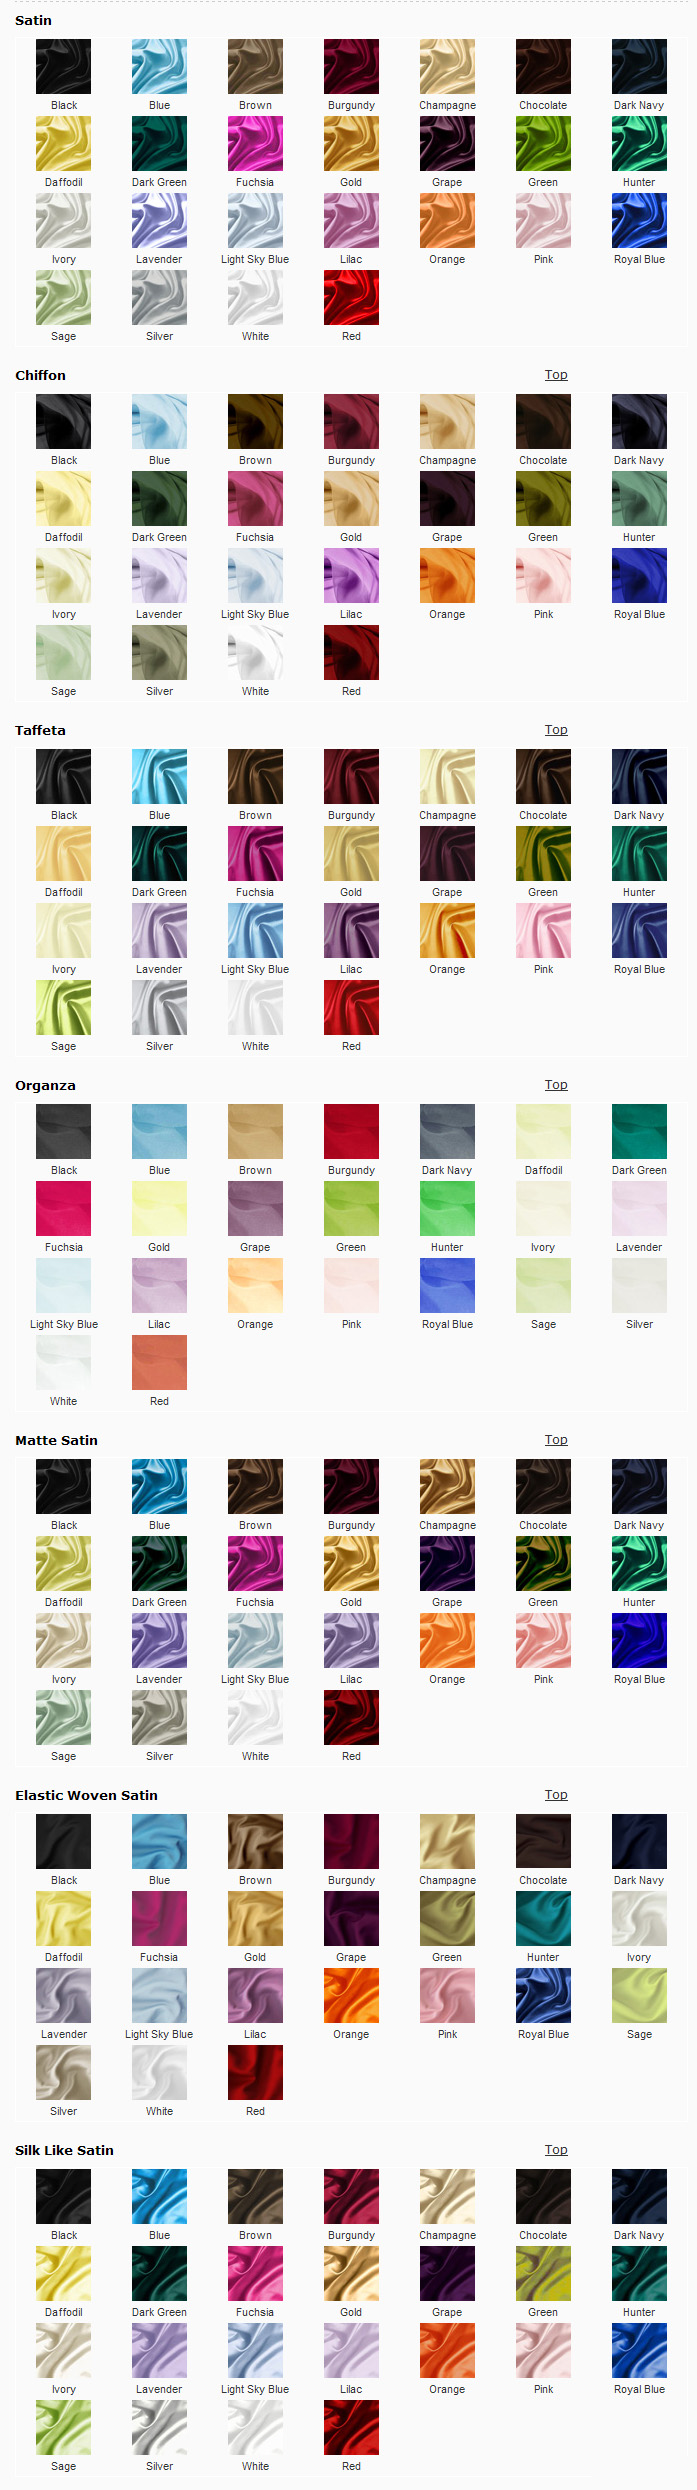 Fiona dresses color chart for lux chiffon bridesmaid dresses fiona dresses color chart for lux chiffon bridesmaid dresses ax03445 and lux chiffon bridesmaid dresses ombrellifo Images